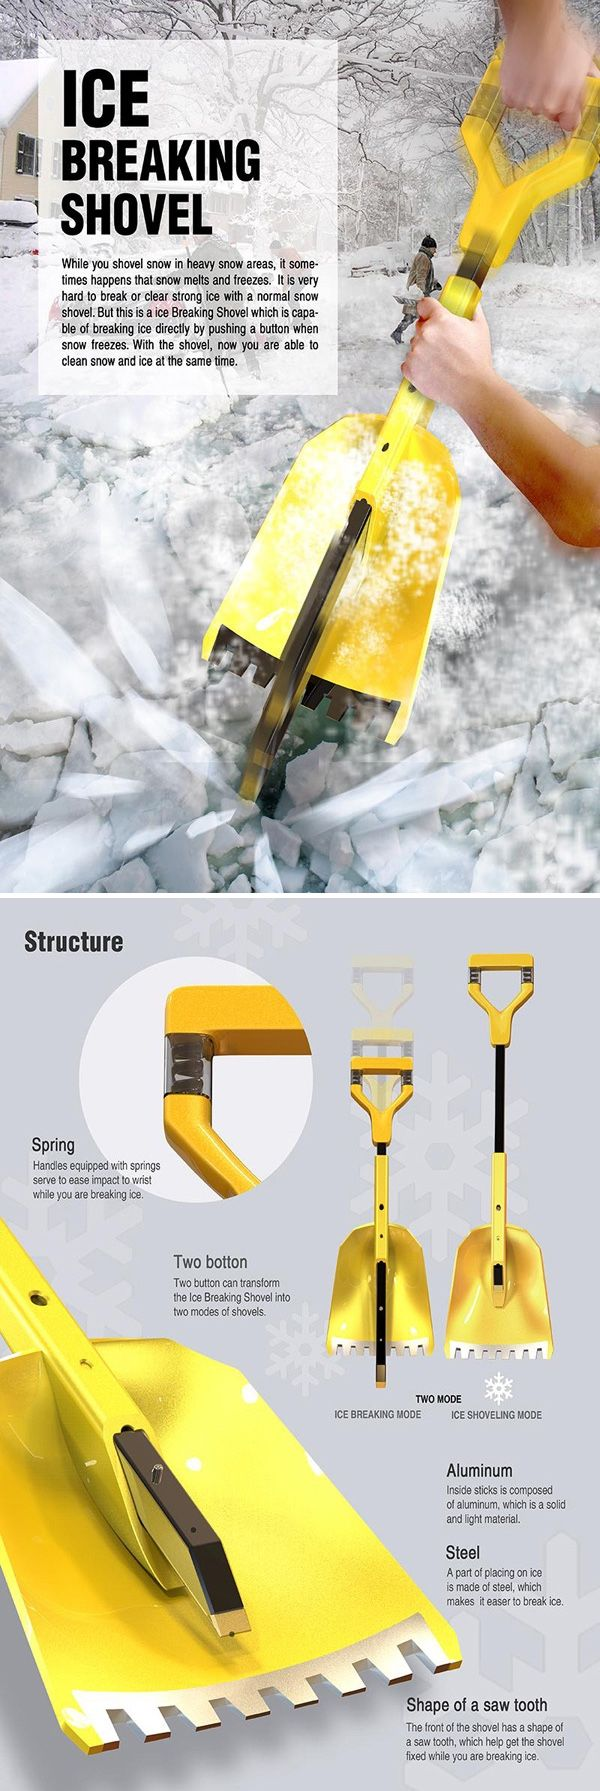 Water is confusing. Can't make up its mind, whether it wants to be ice or snow. Either way, you got to break your back shoveling your sidewalk. Luckily, the Ice Breaking Shovel is a nifty multi-tool, because frozen water can be such a double-sided affair. Use it either as an ice cracking tool, or an ice shoveling tool.